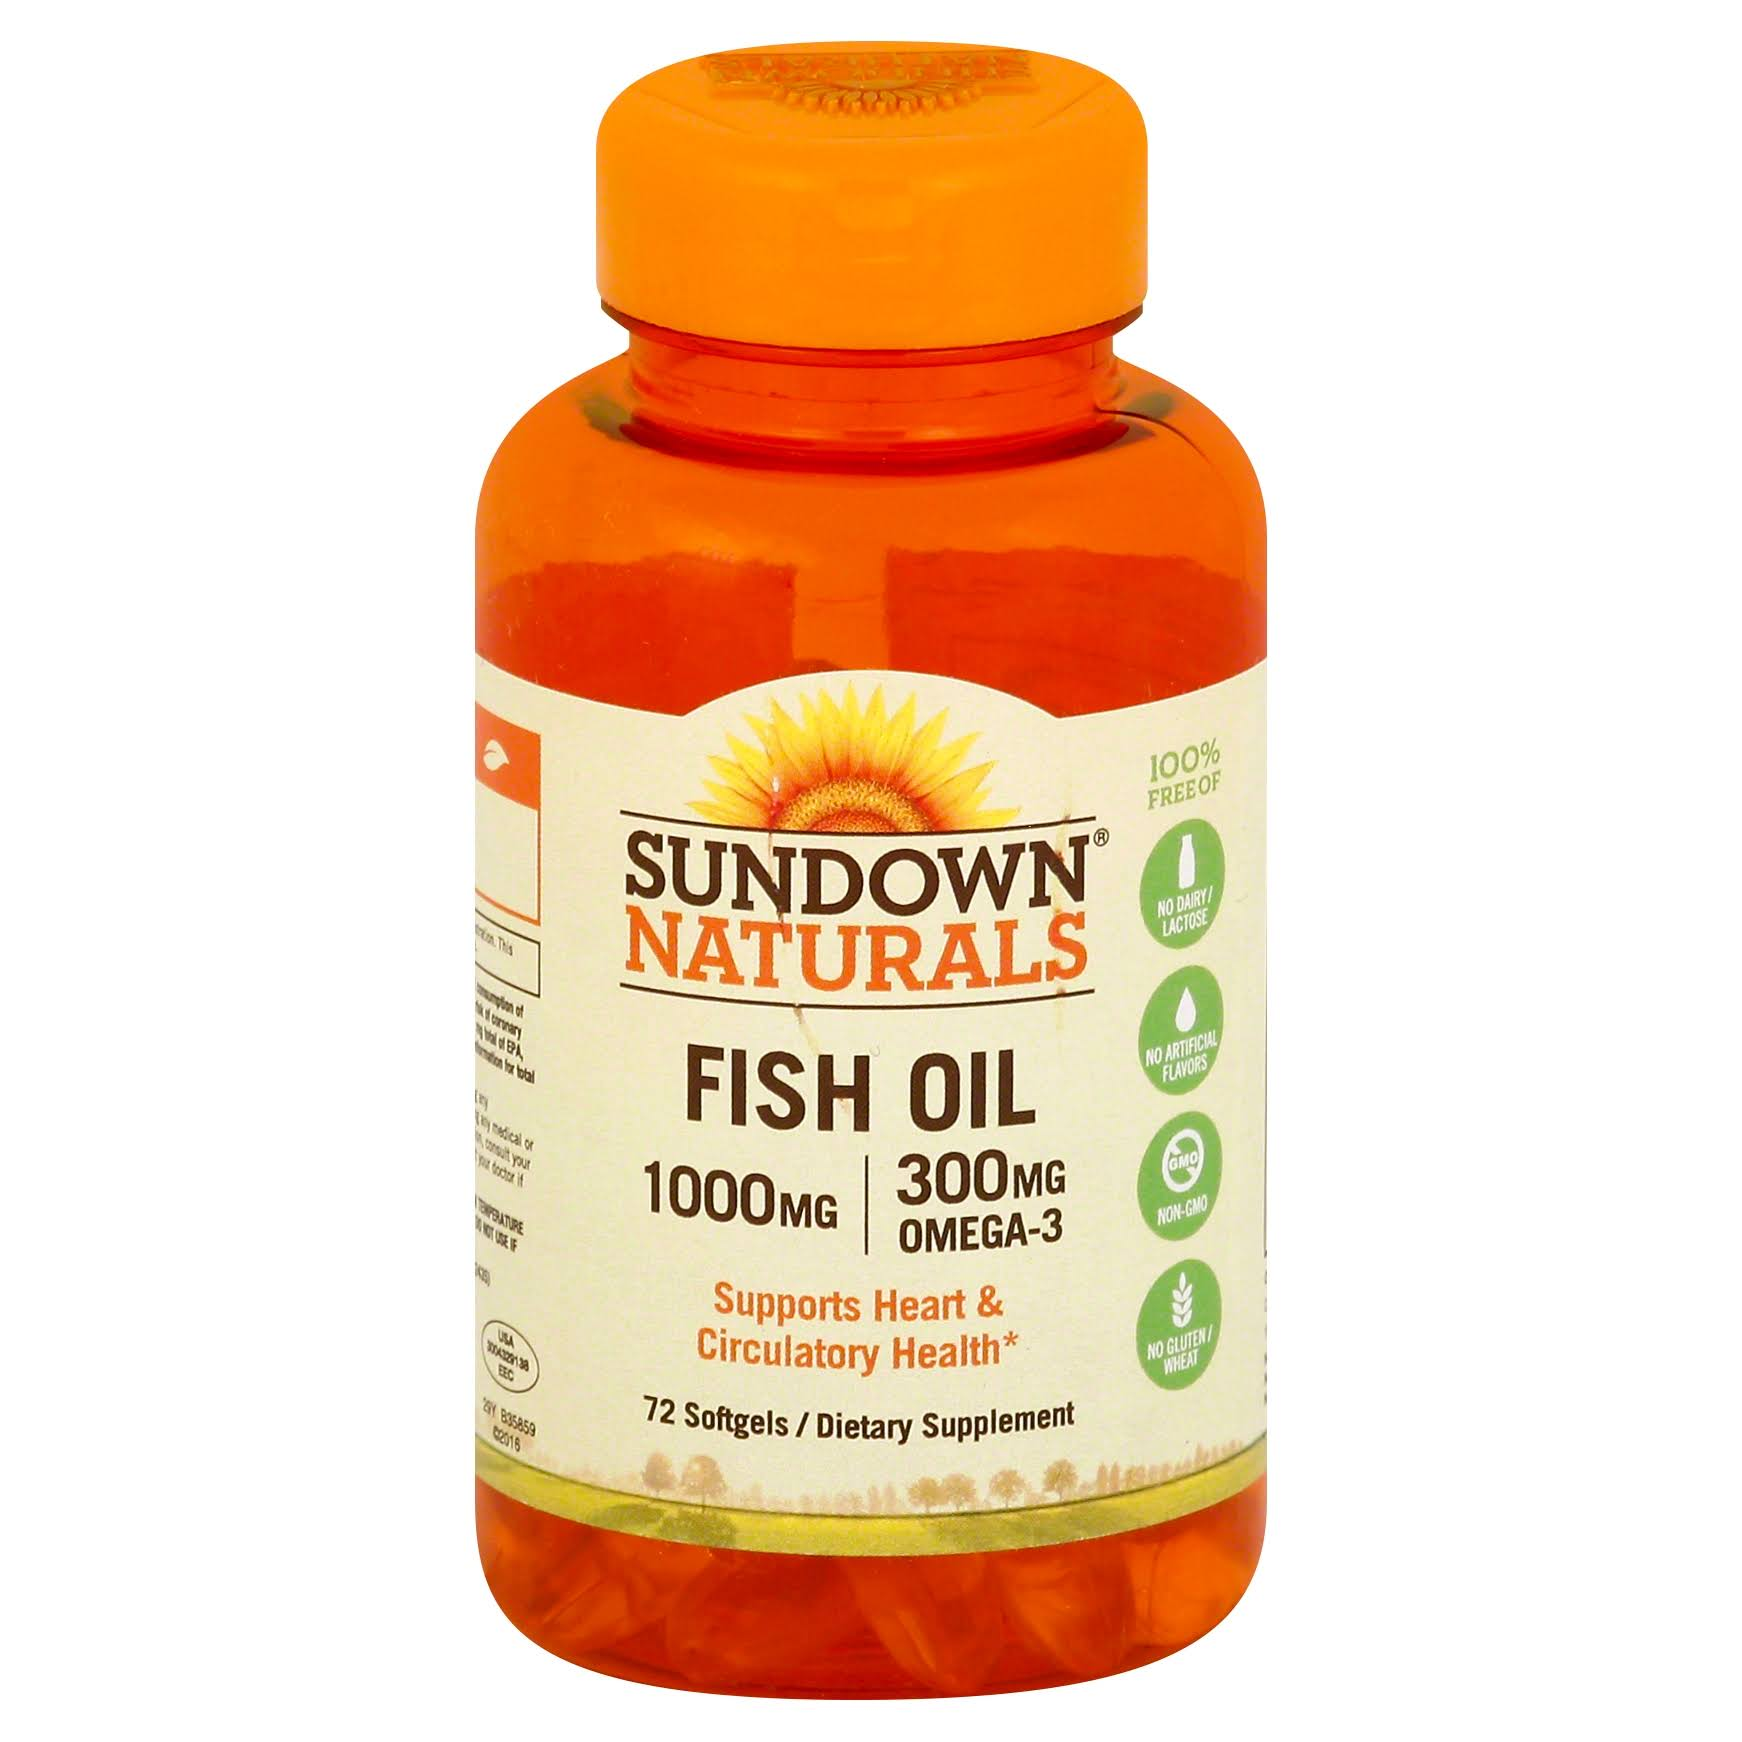 Sundown Naturals Fish Oil Supplement - 1000mg, 72ct